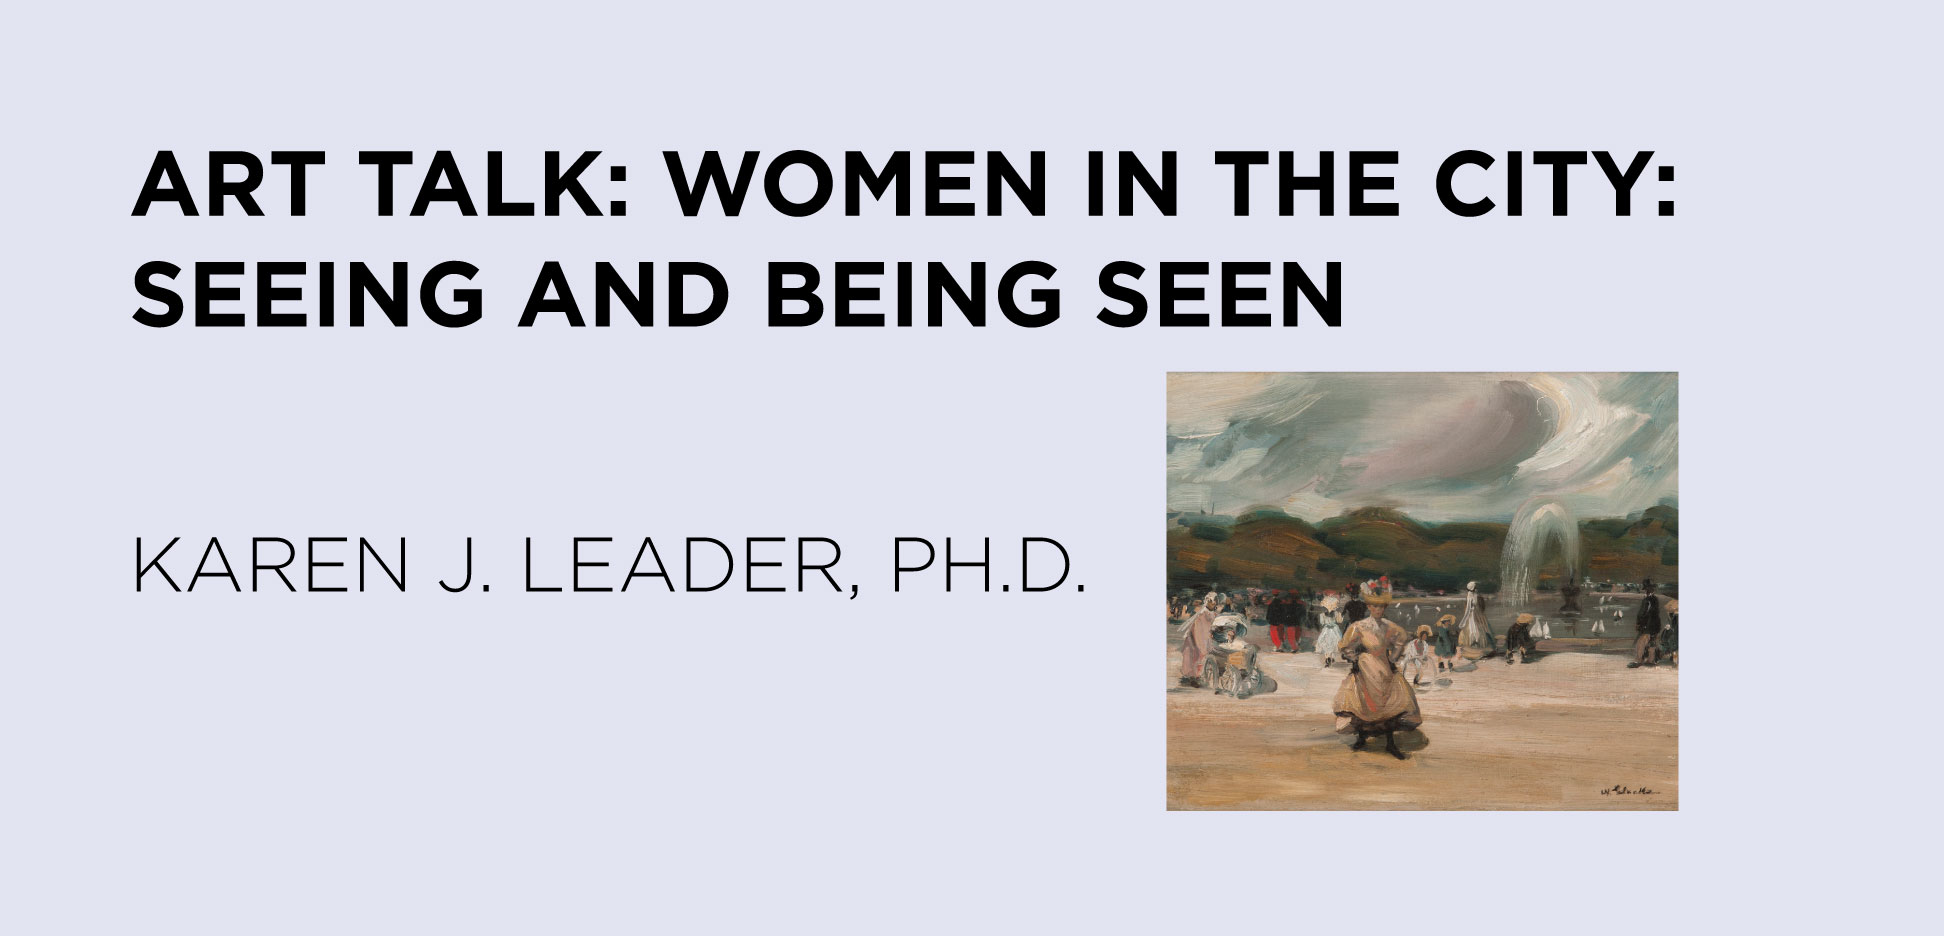 Art Talk: Women in the City: Seeing and Being Seen: Karen J. Leader, Ph.D.